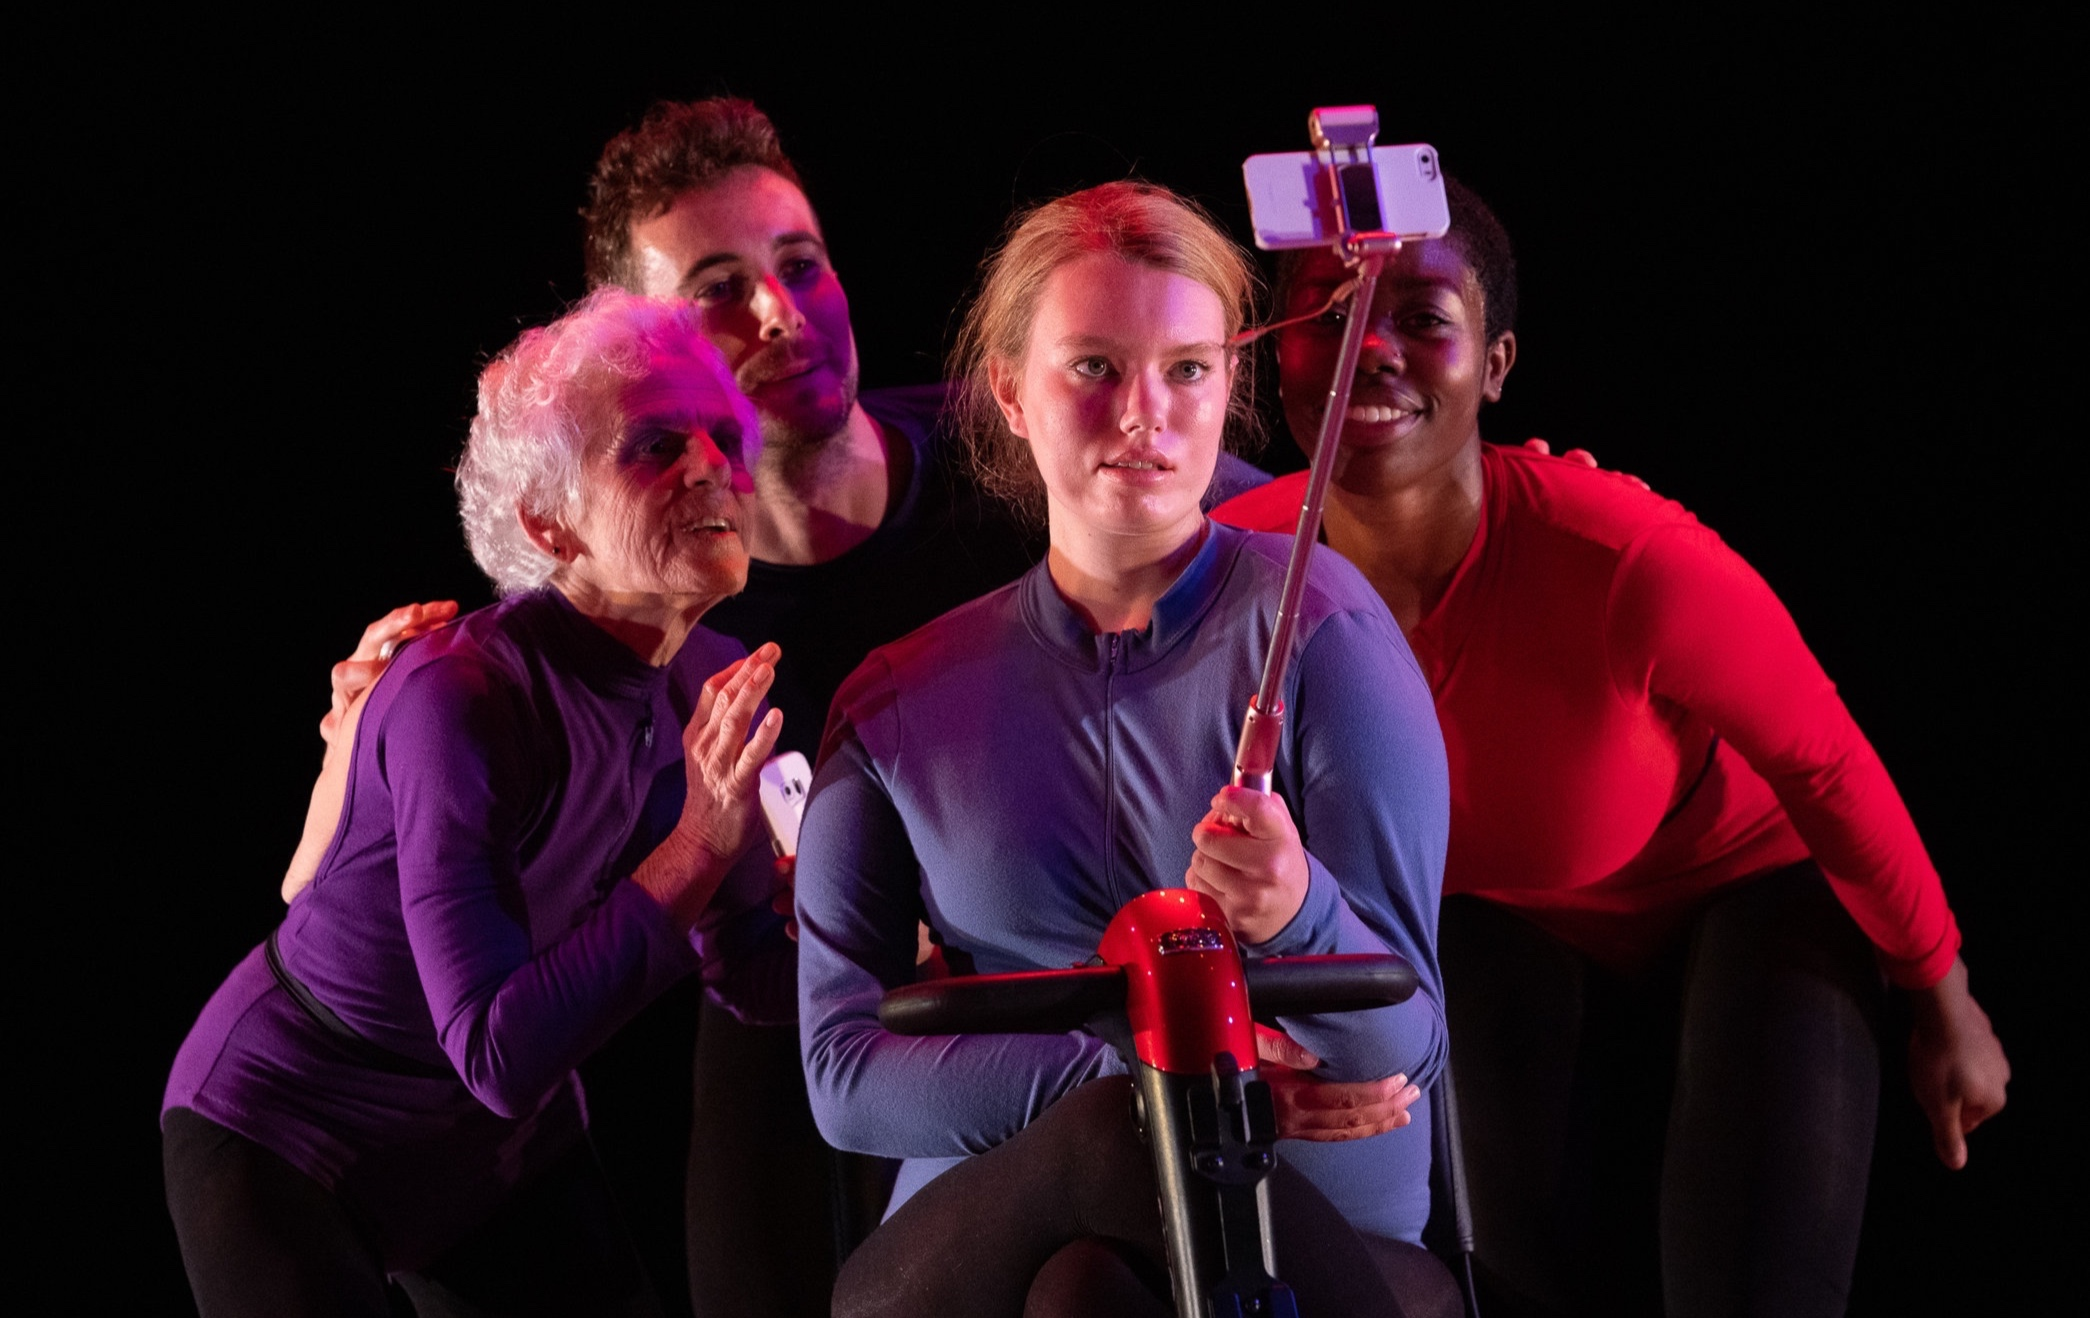 Phantom Limb:   Four dancers in red, purple and blue tops are grouped together posing for a phone on a selfie stick. Photo: Steven Pisano